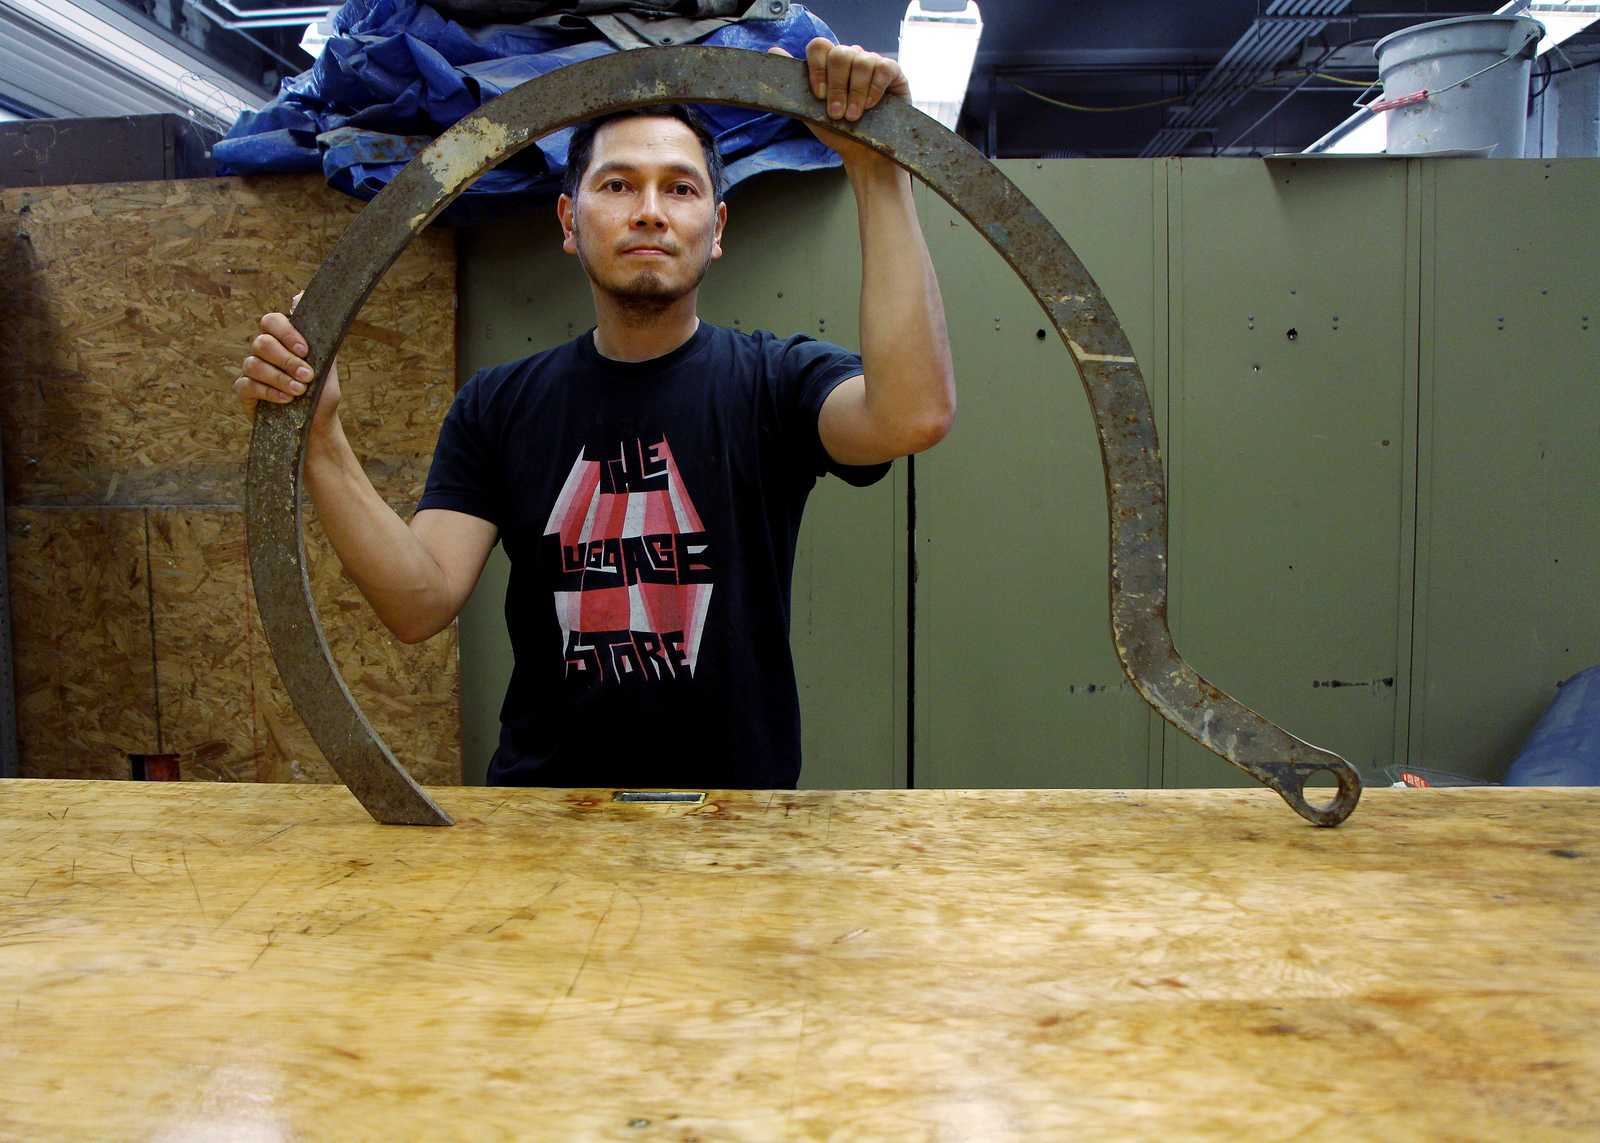 Professor Arcega stands with a sculpting tool in the sculpting lab at San Francisco State on Thursday, August 22nd. Arcega is a new professor part of the art department teaching Sculpting 1 and 2 this semester. Photo by Gavin McIntyre / Xpress